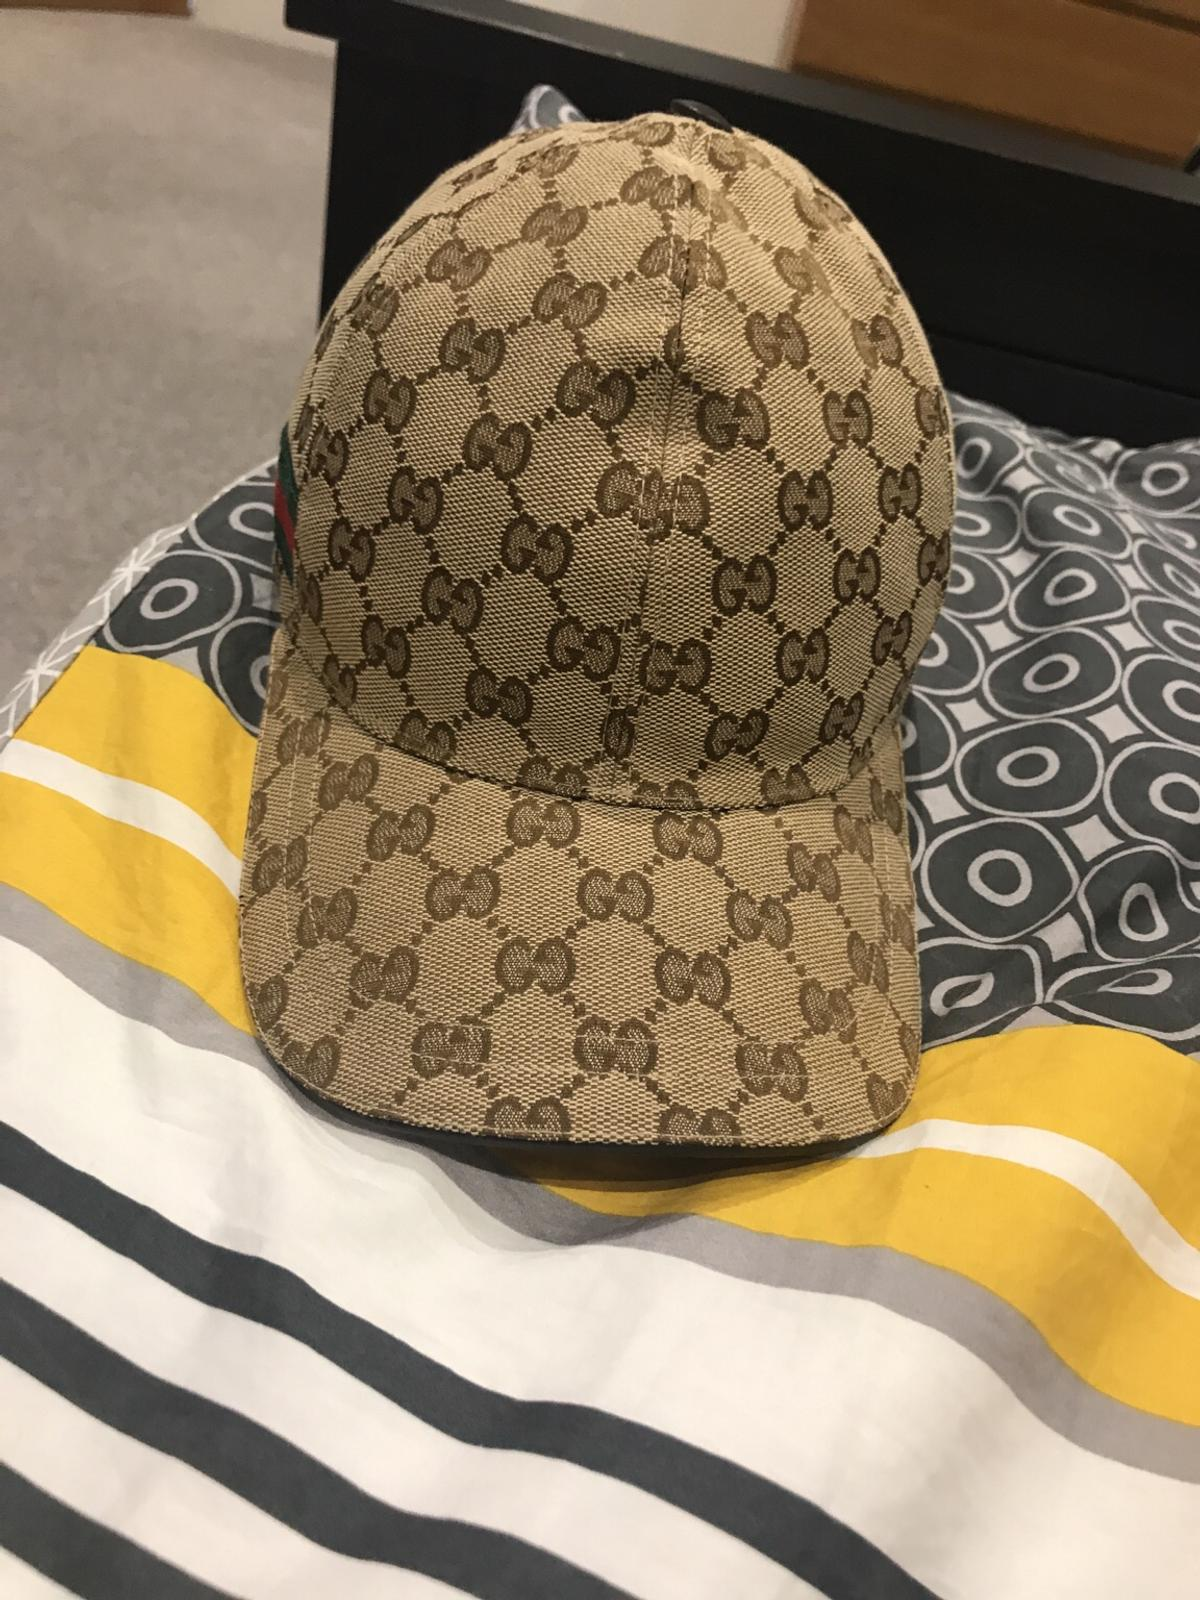 8da6dfdbac0ee Authentic Gucci cap in TS17 Barwick for £130.00 for sale - Shpock